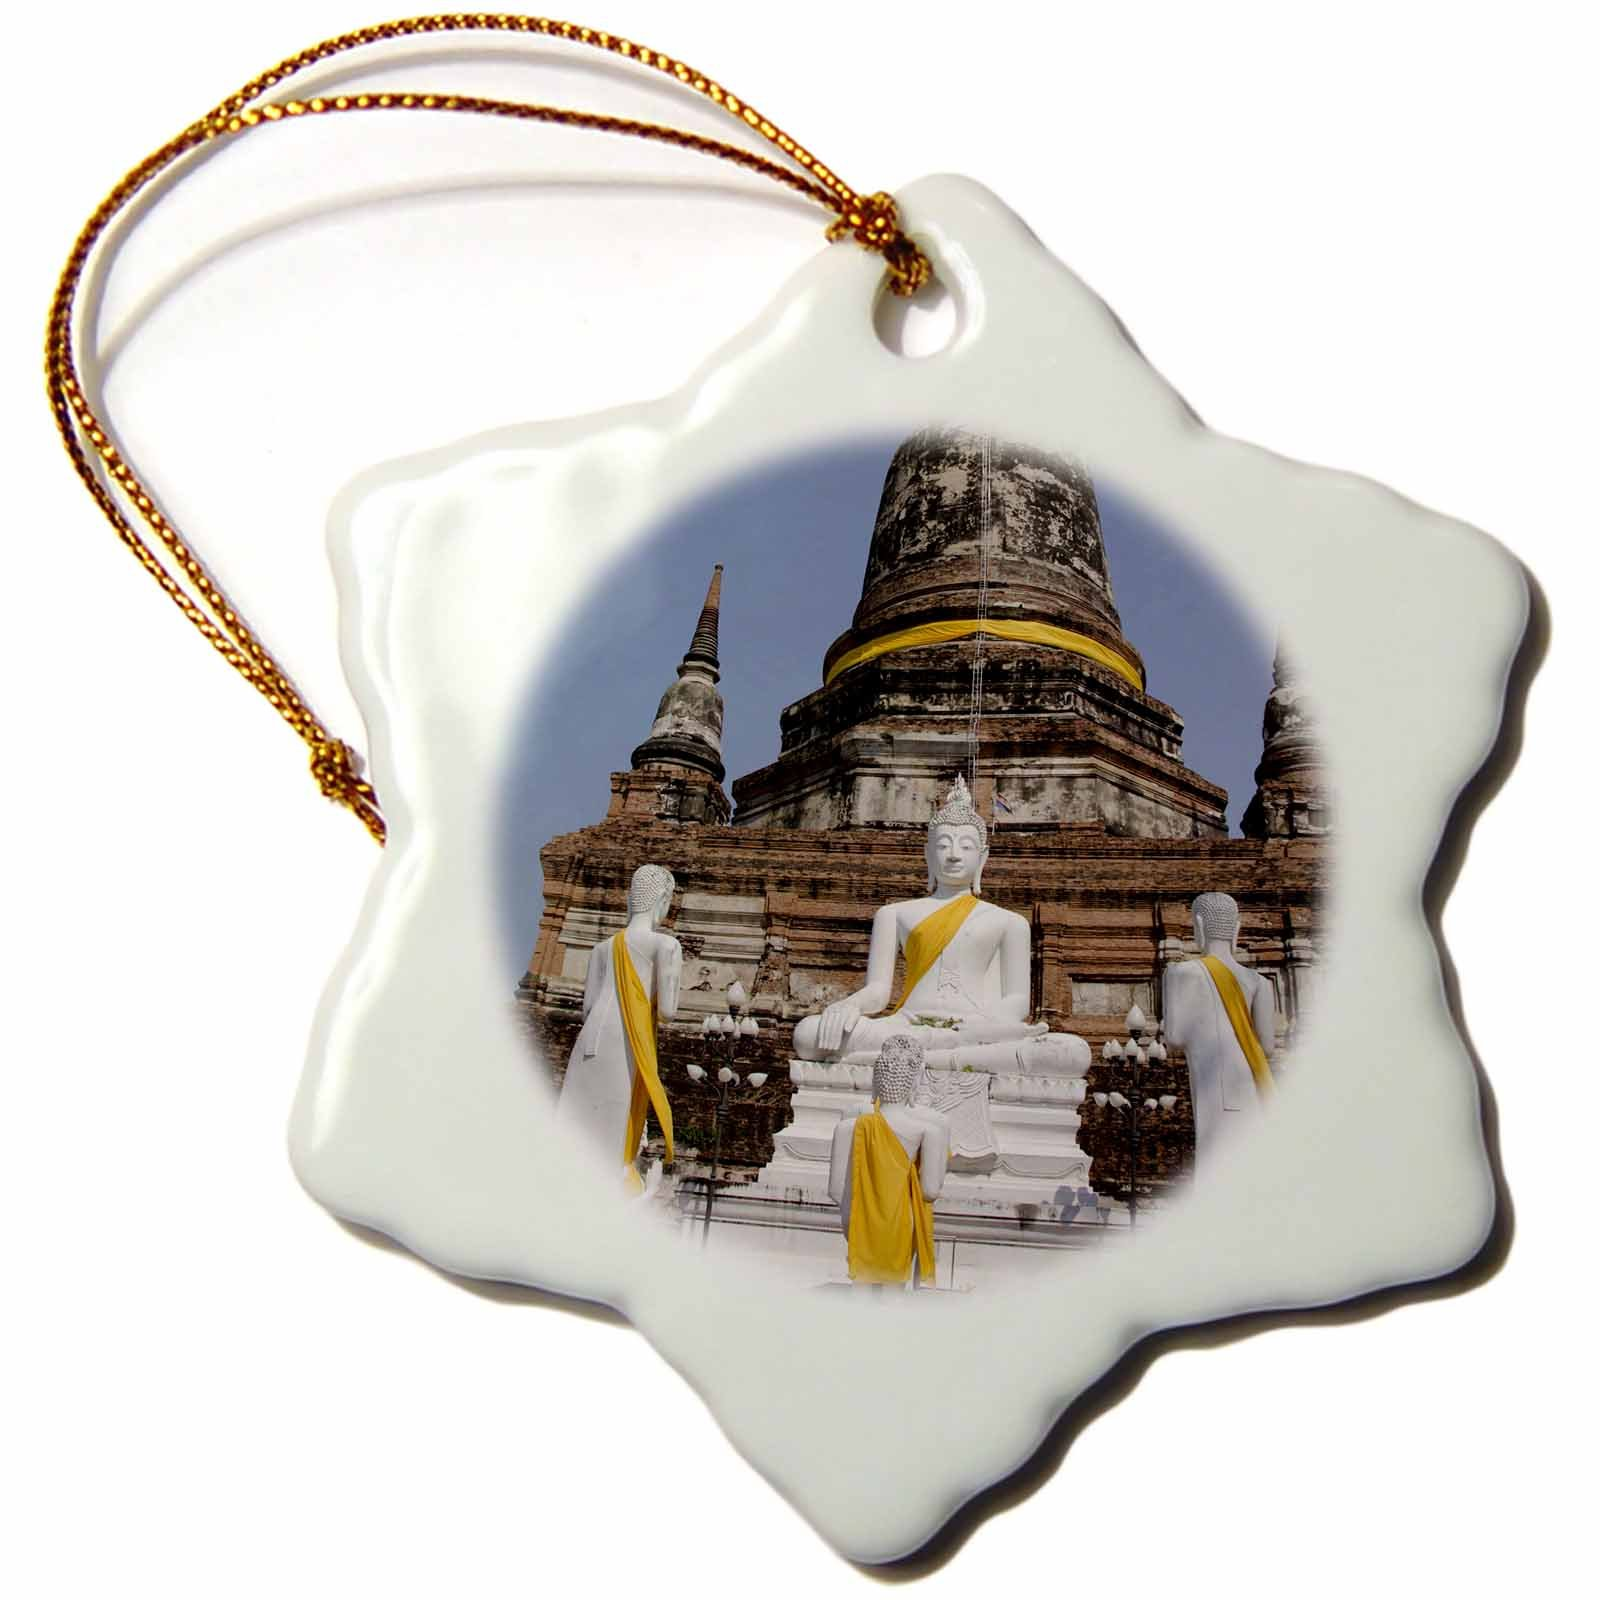 3dRose orn_132991_1 Buddha, Wat Phra Chao Phya-Thai, Thailand As36 Cmi0612 Cindy Miller Hopkins Snowflake Ornament, Porcelain, 3'' by 3dRose